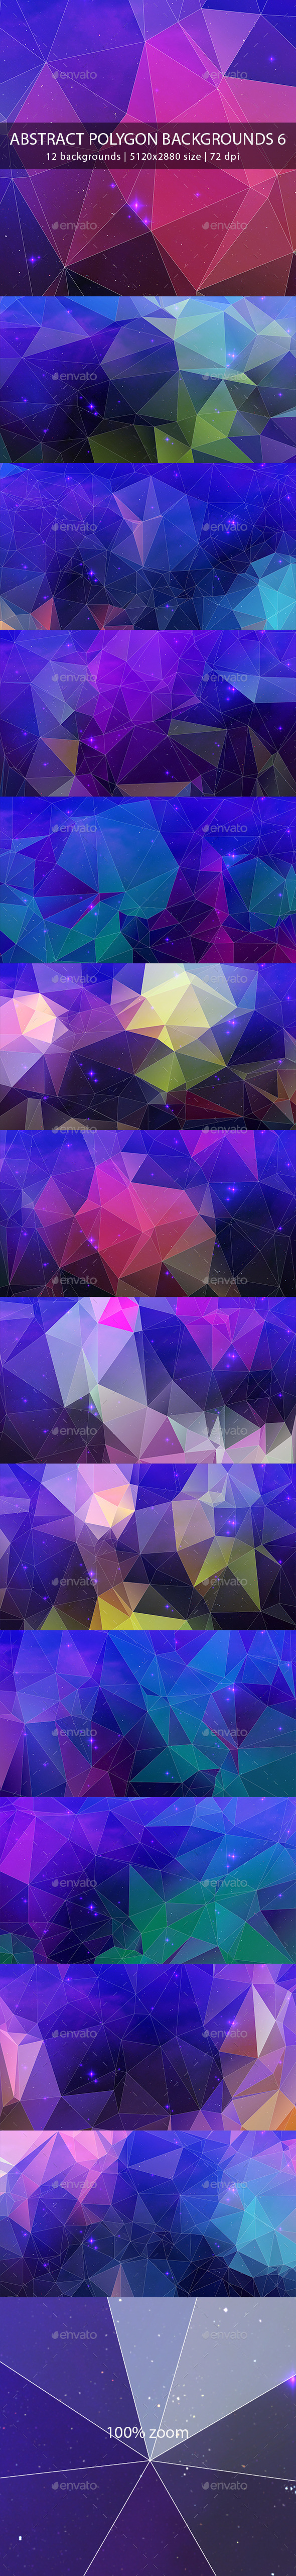 GraphicRiver Abstract Polygon Backgrounds 6 9896387